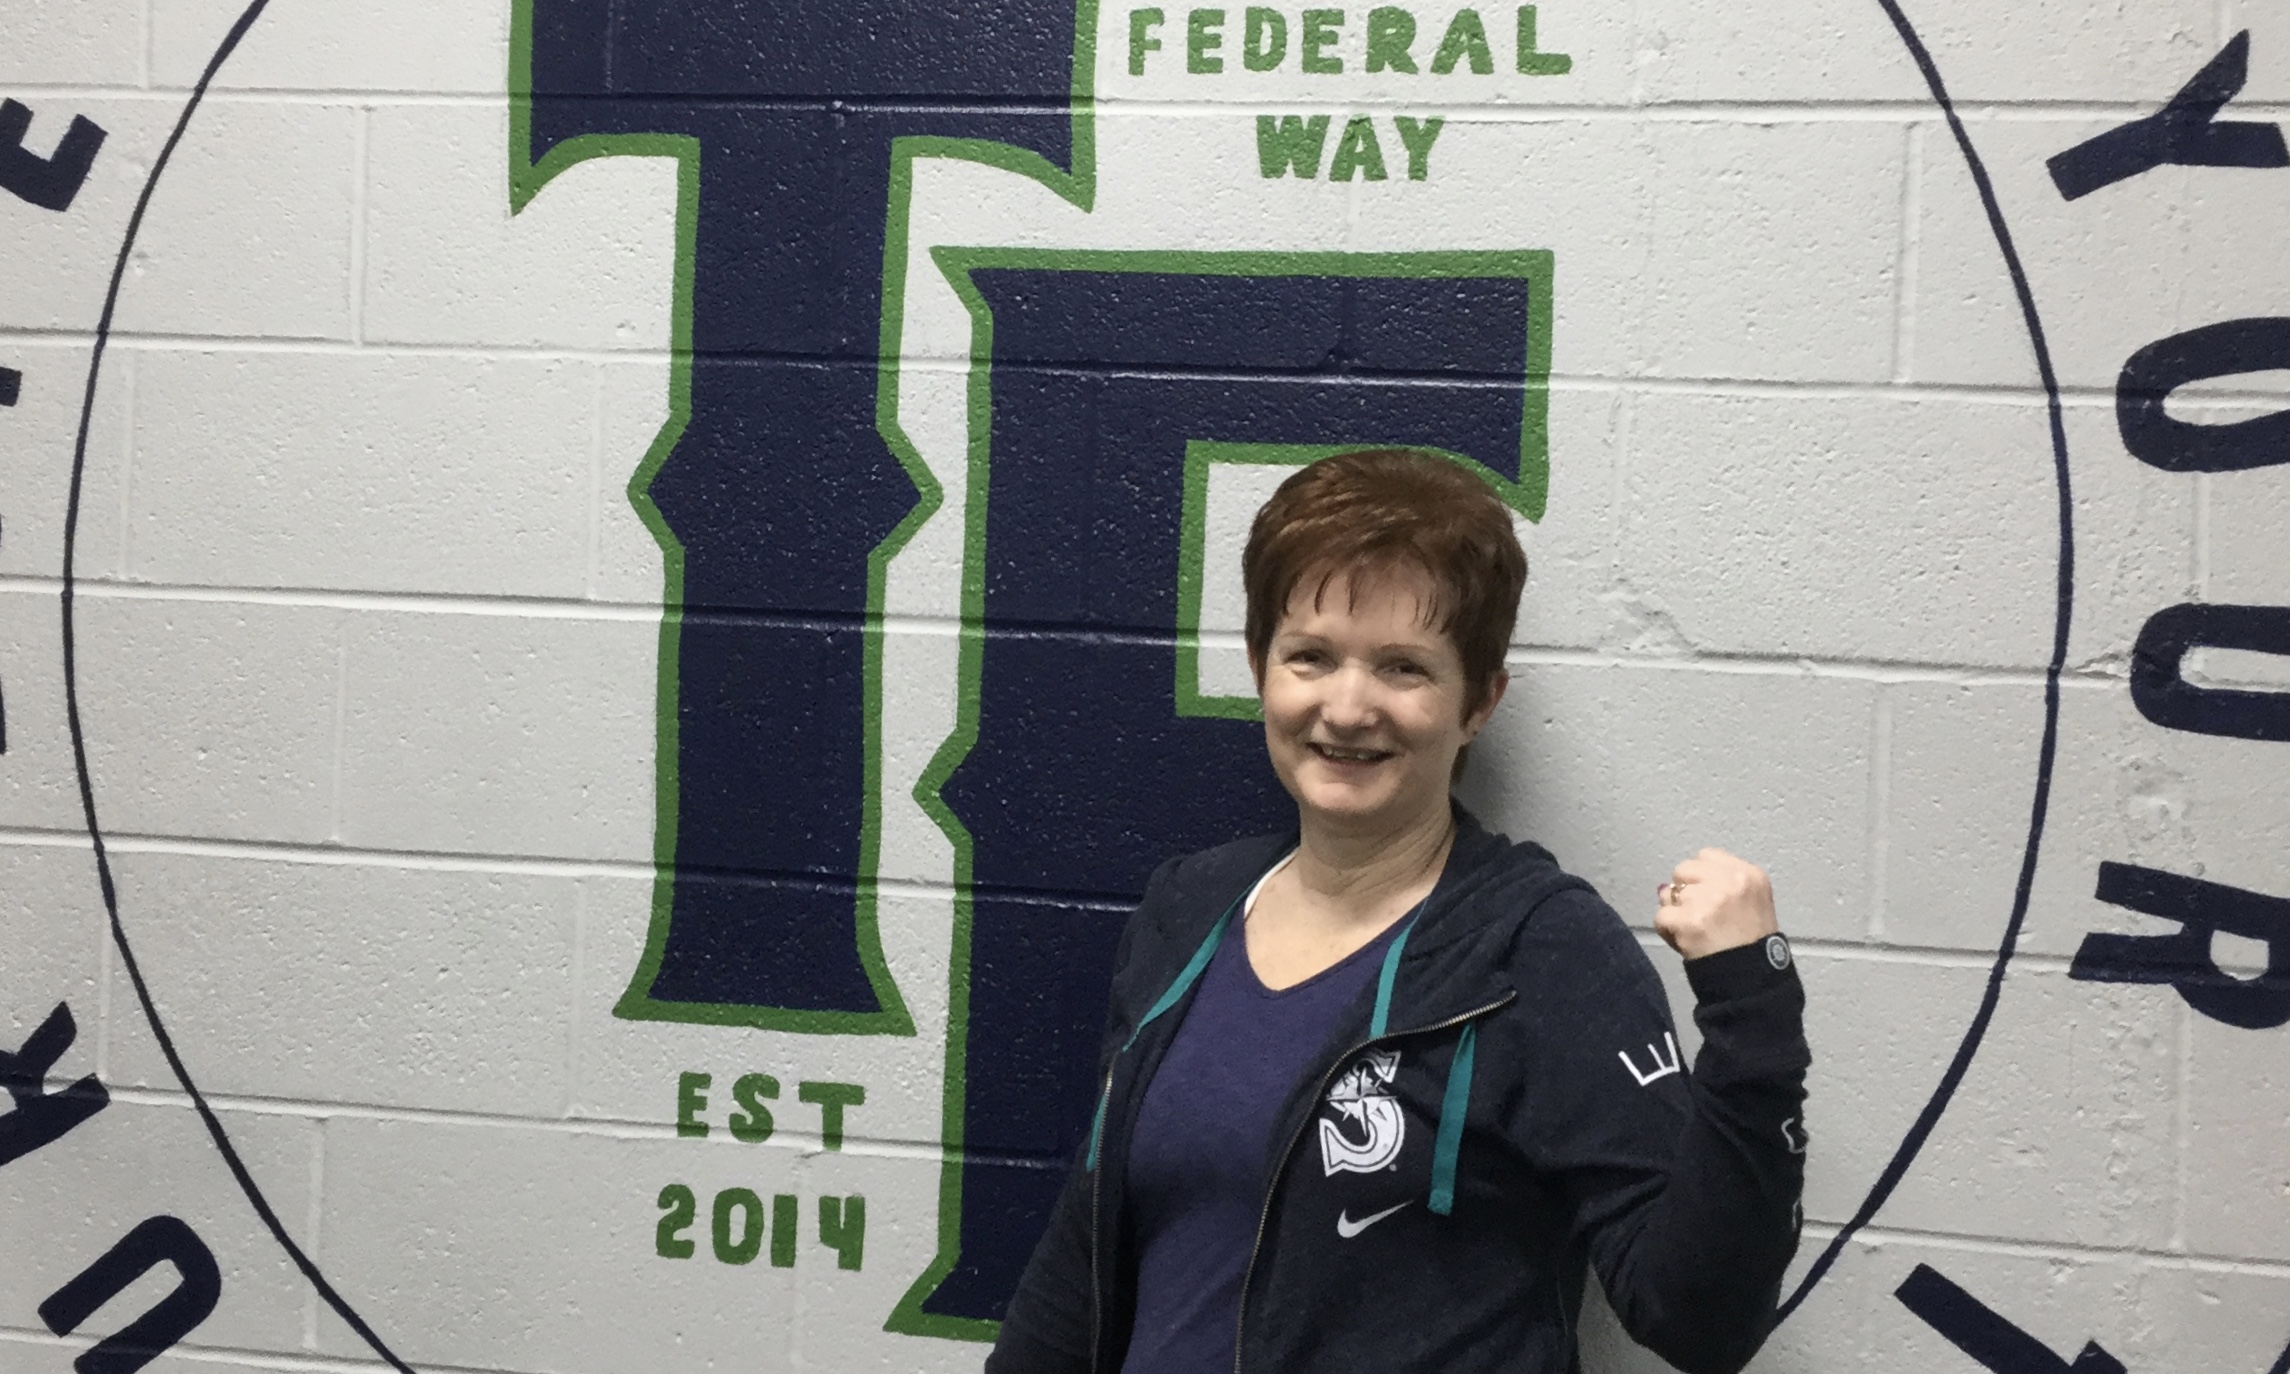 Member of the Month, March 2019: JANICE